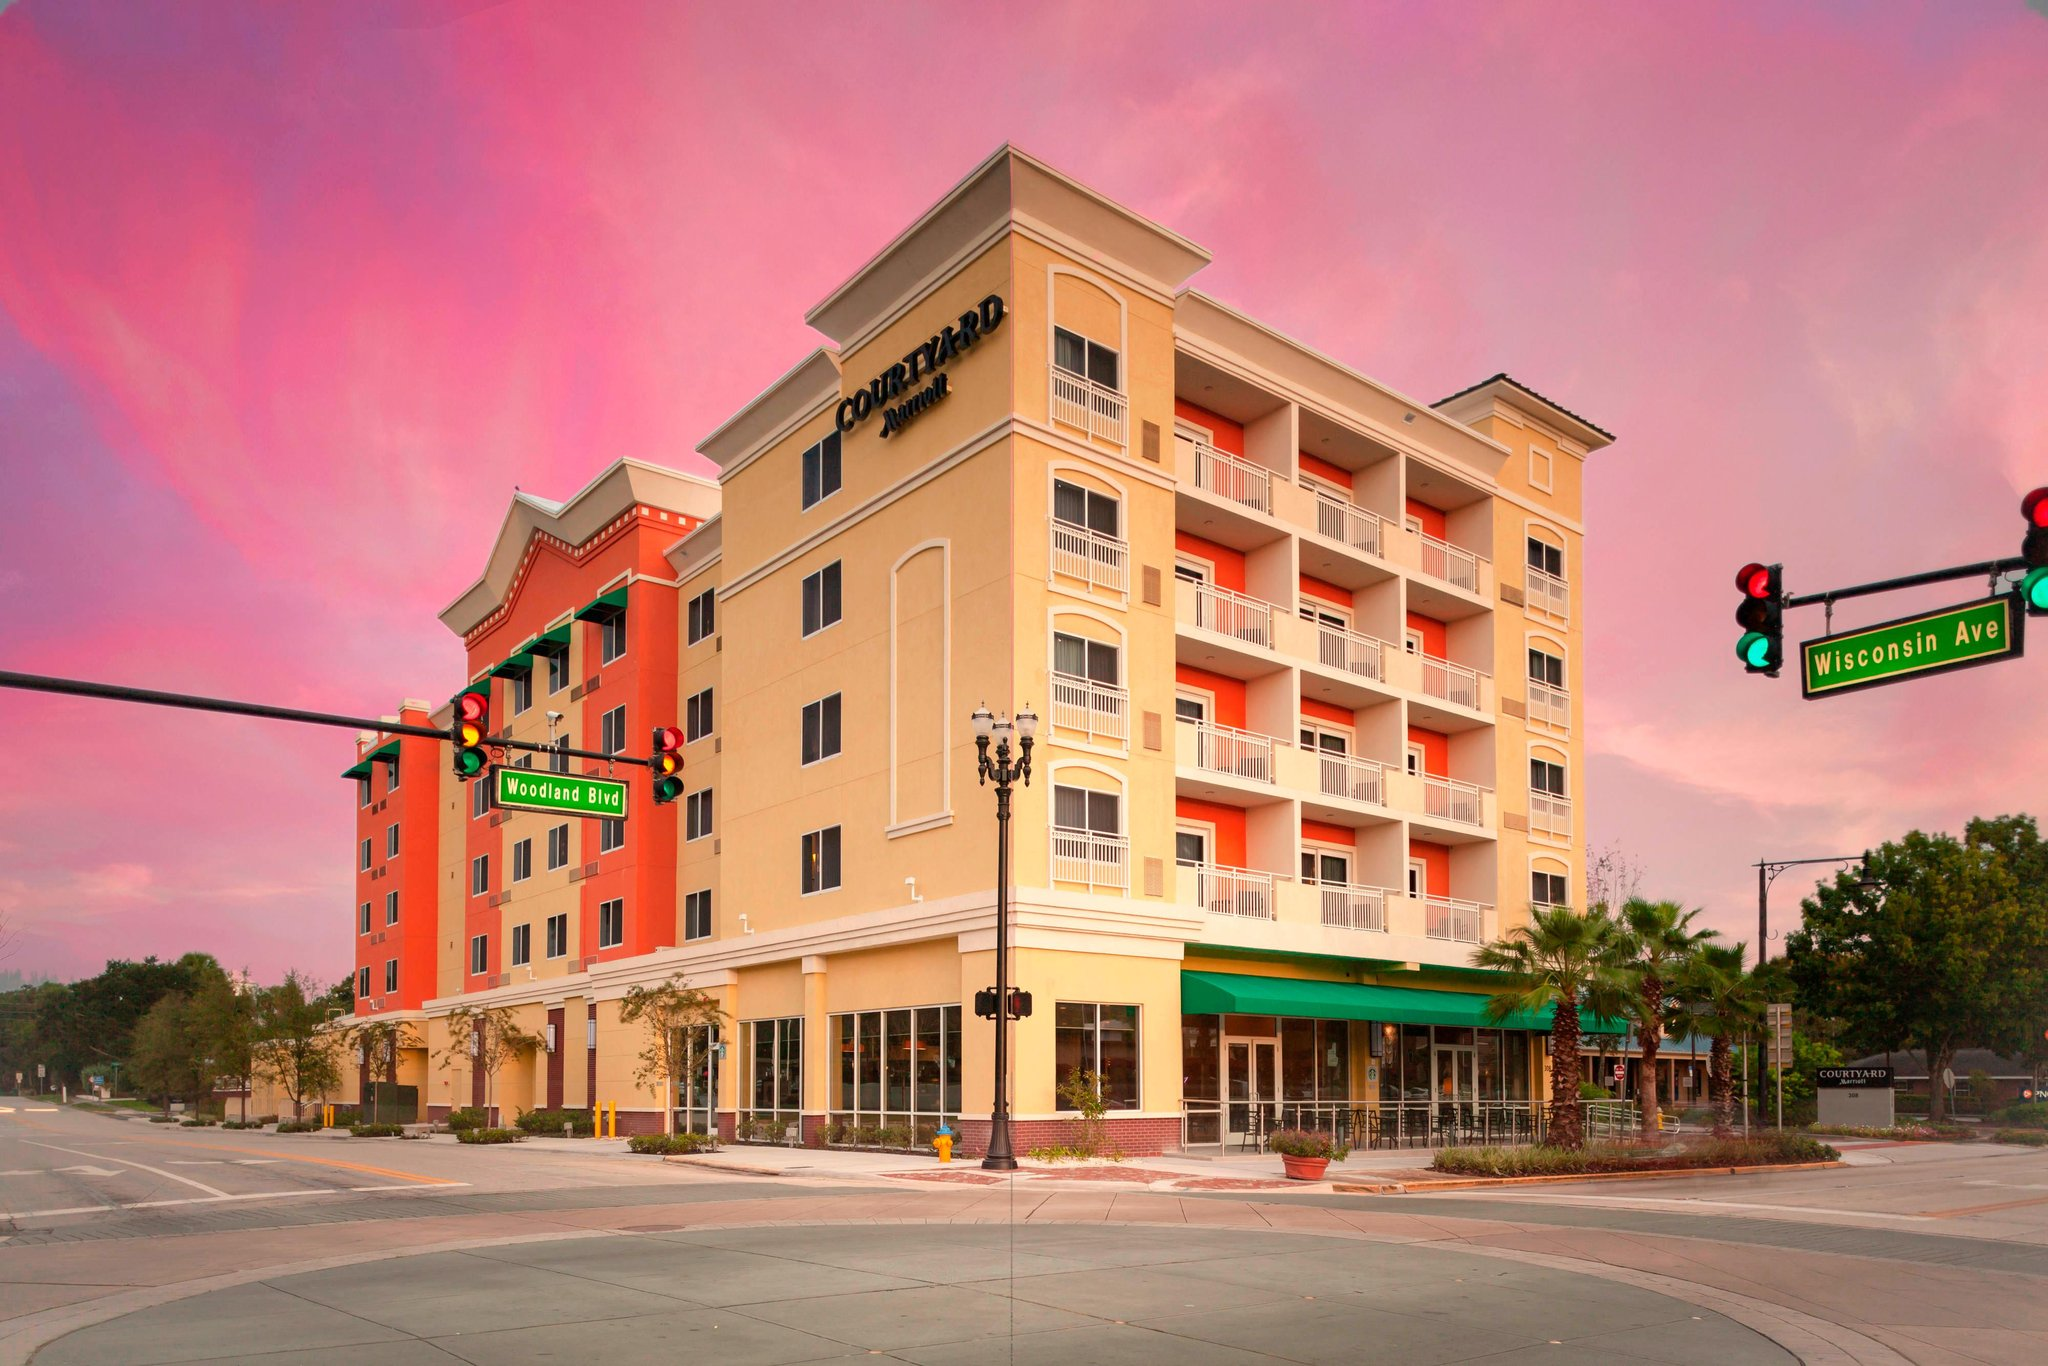 Courtyard by Marriott DeLand Historic District